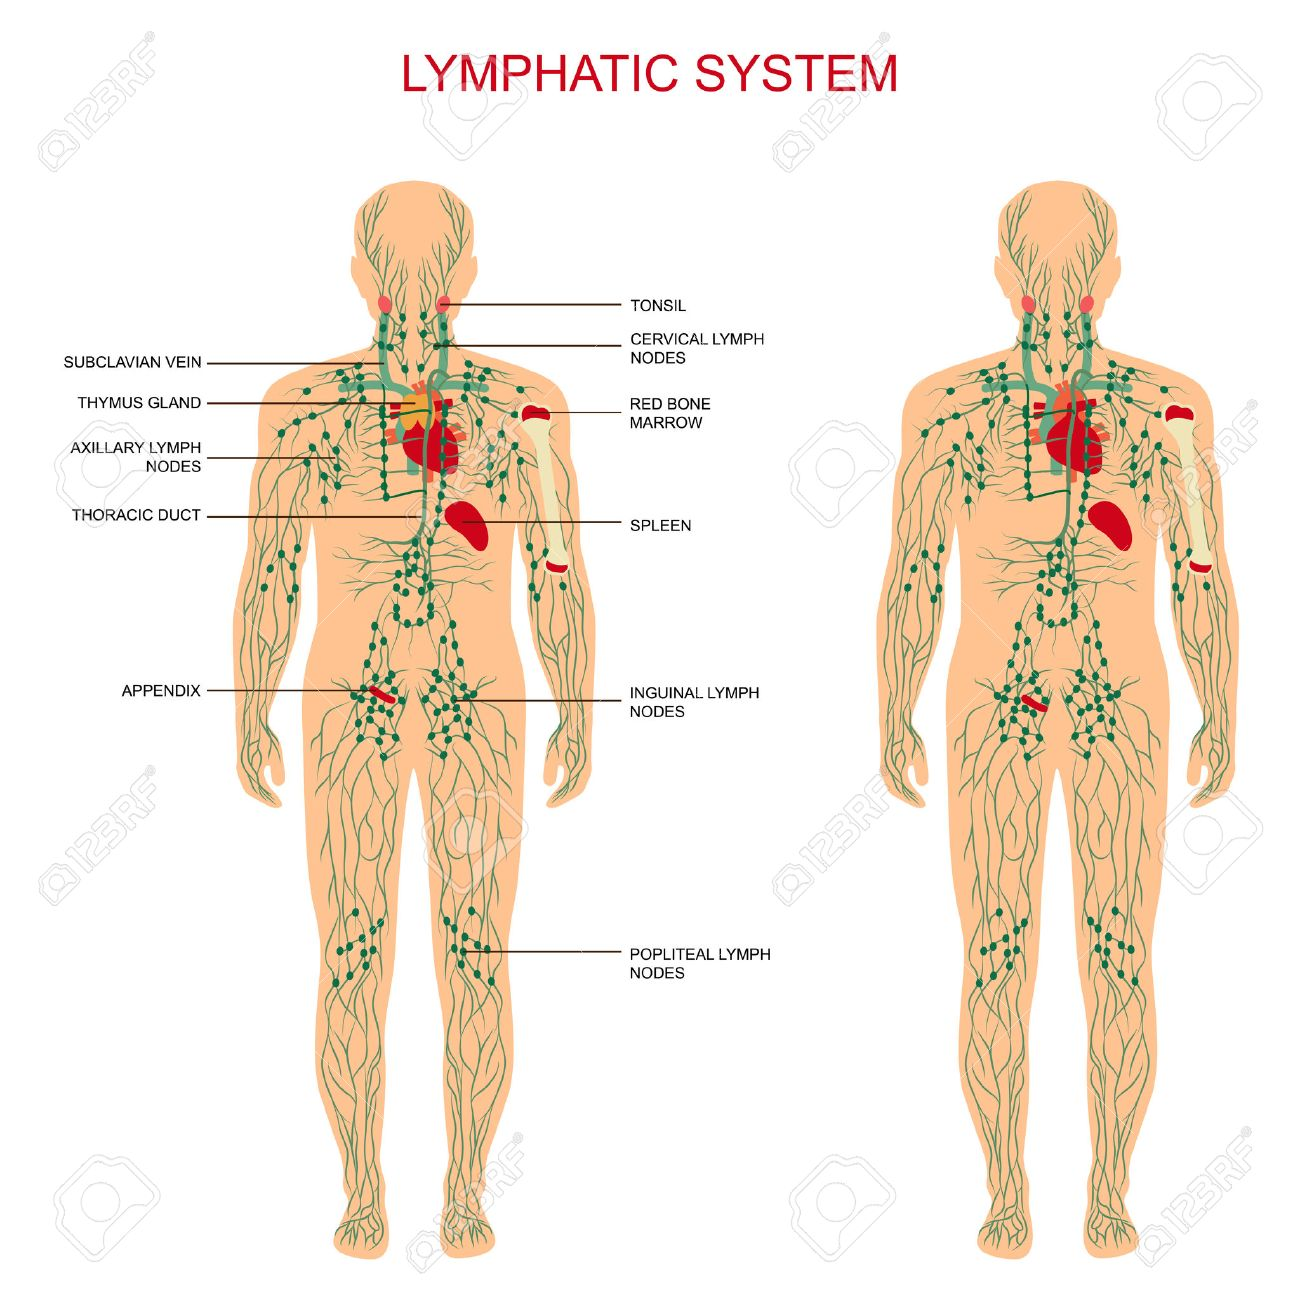 Human Anatomy Lymphatic System Medical Illustration Lymph